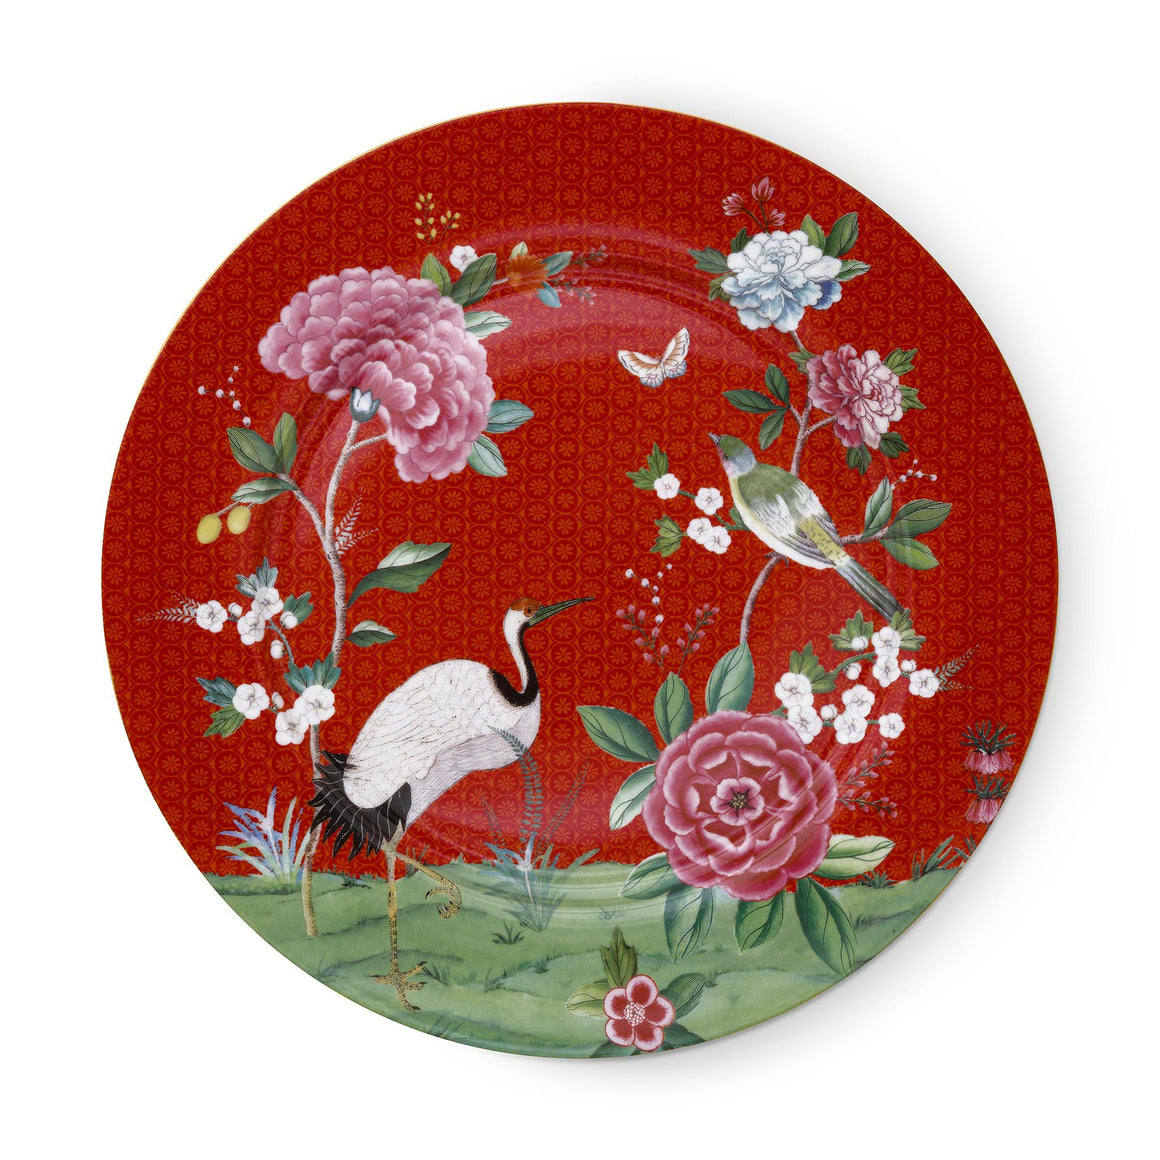 Blushing Birds Supla 32 Cm, Red